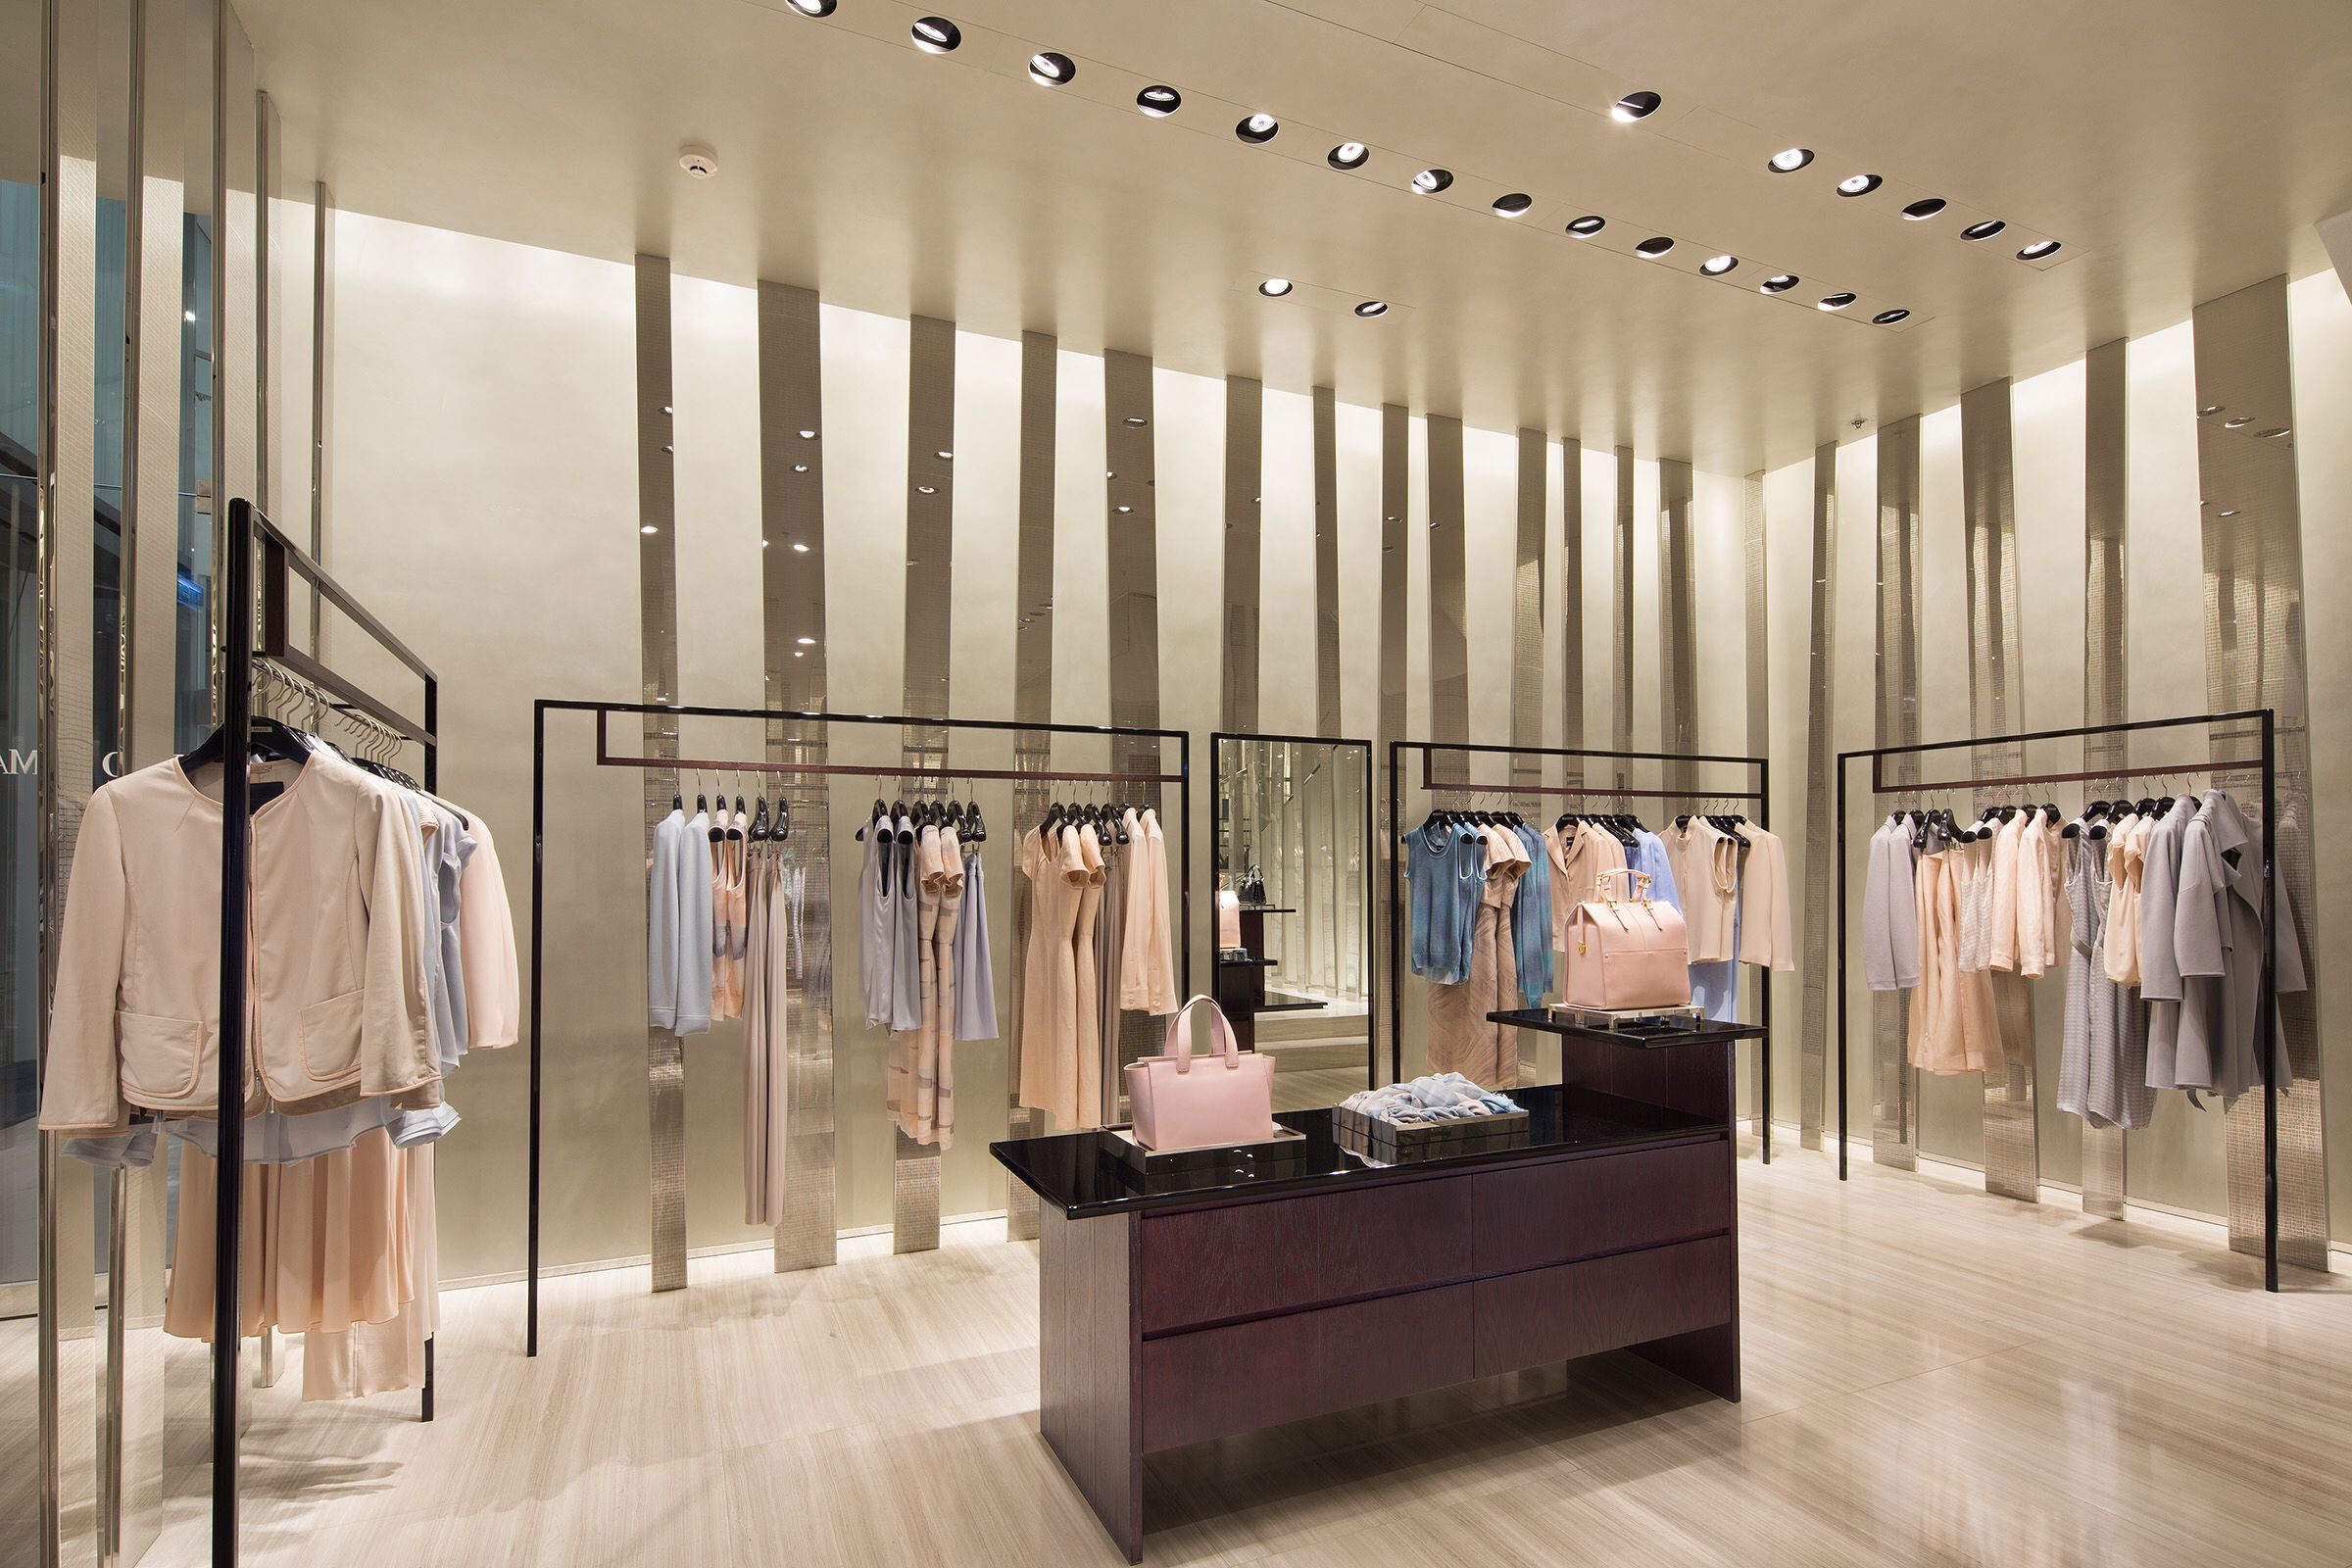 Armani store my interior design interiores de tienda for Interior design negozi